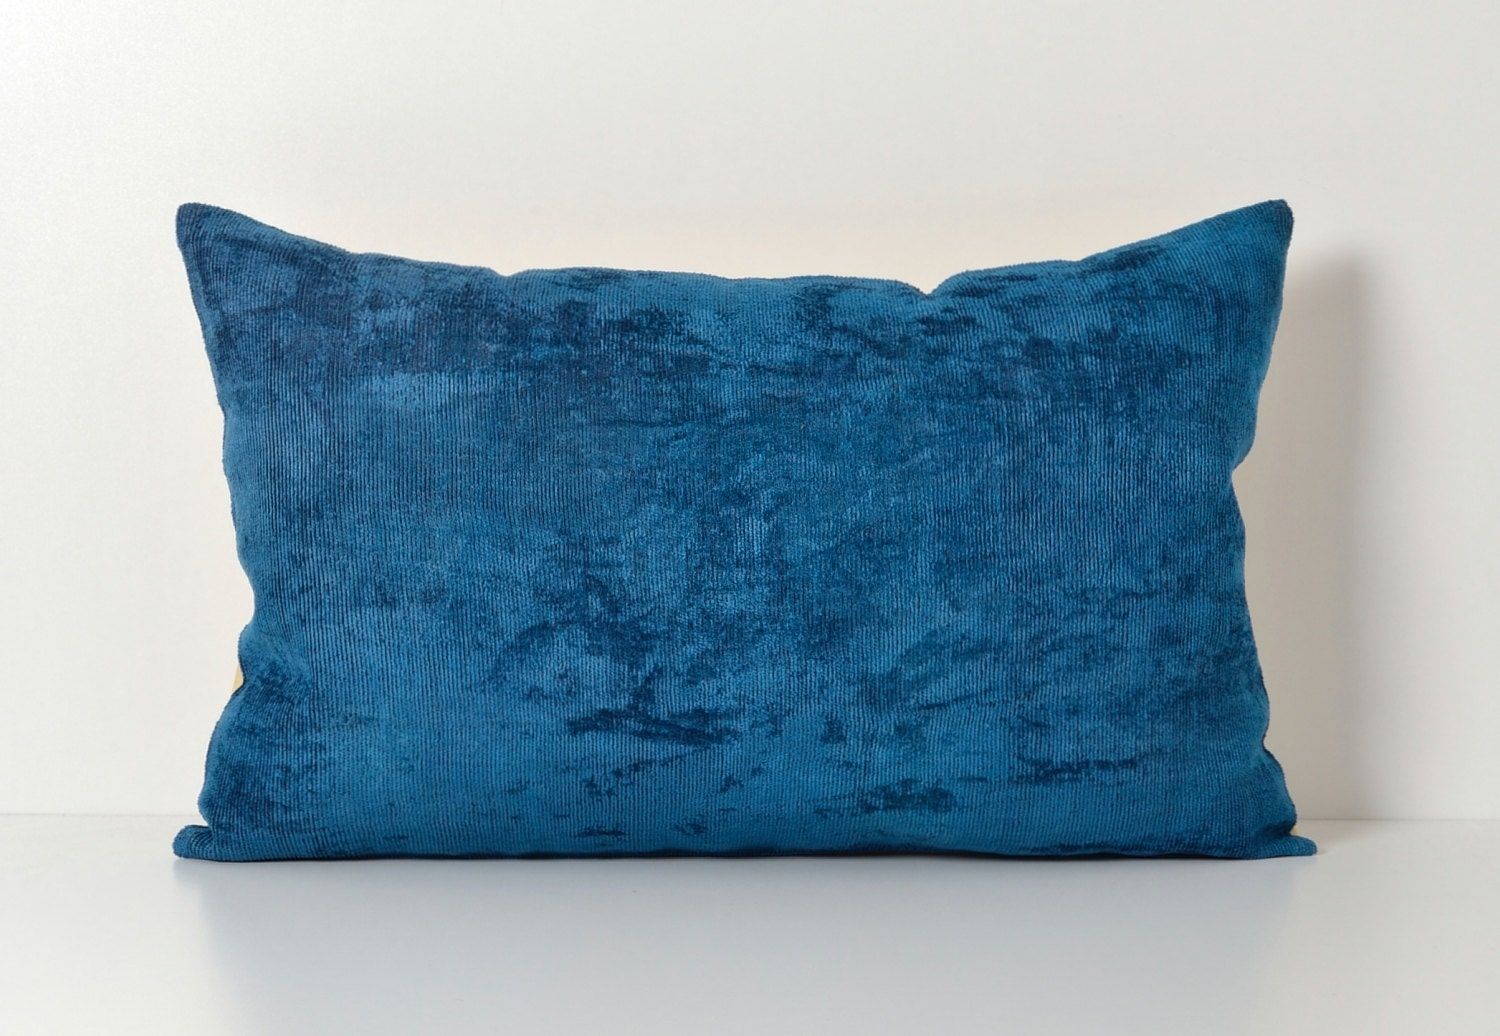 Blue Ikat Pillow Cover Ikat Pillows Decorative Pillow Lumbar